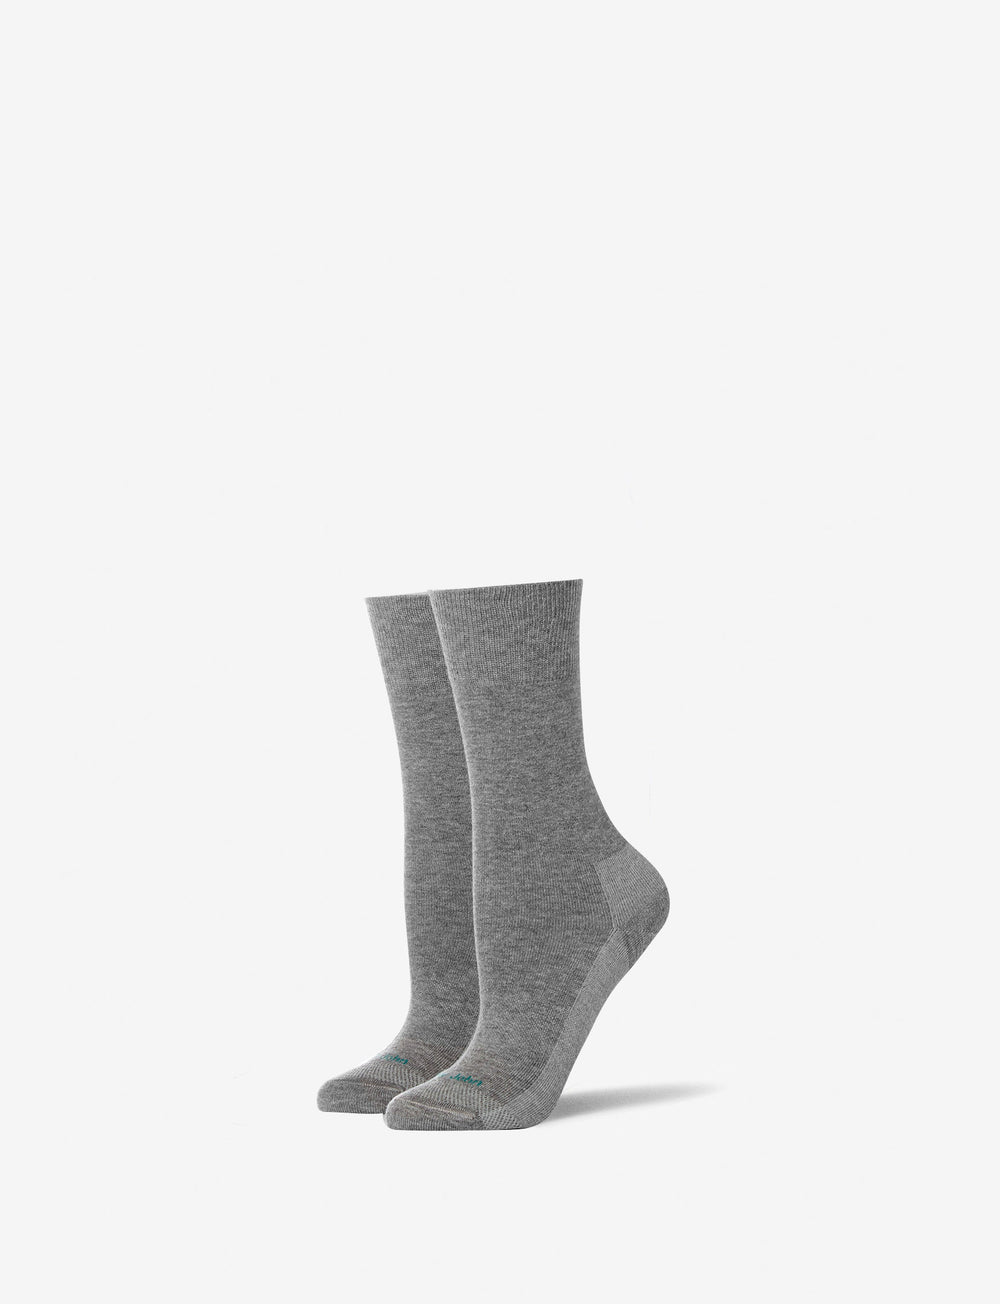 Women's Stay Up Dress Sock Details Image